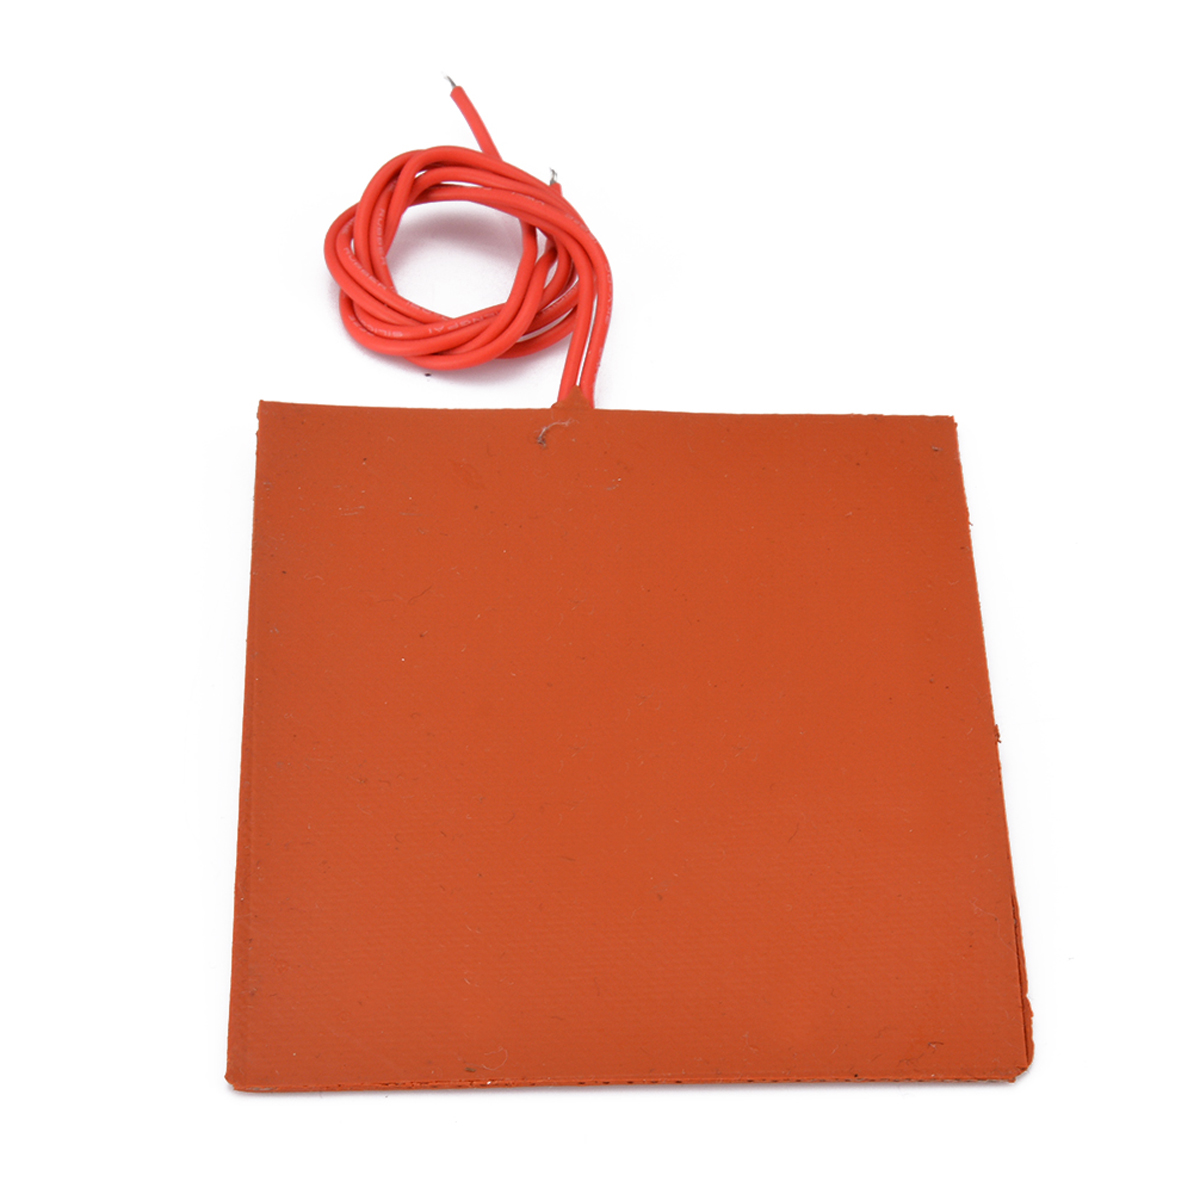 12V DC 20W Flexible Waterproof Silicone Heater Bed Pad For 3D Printer Heat Bed Electric Pads Red 80x100mm Mayitr